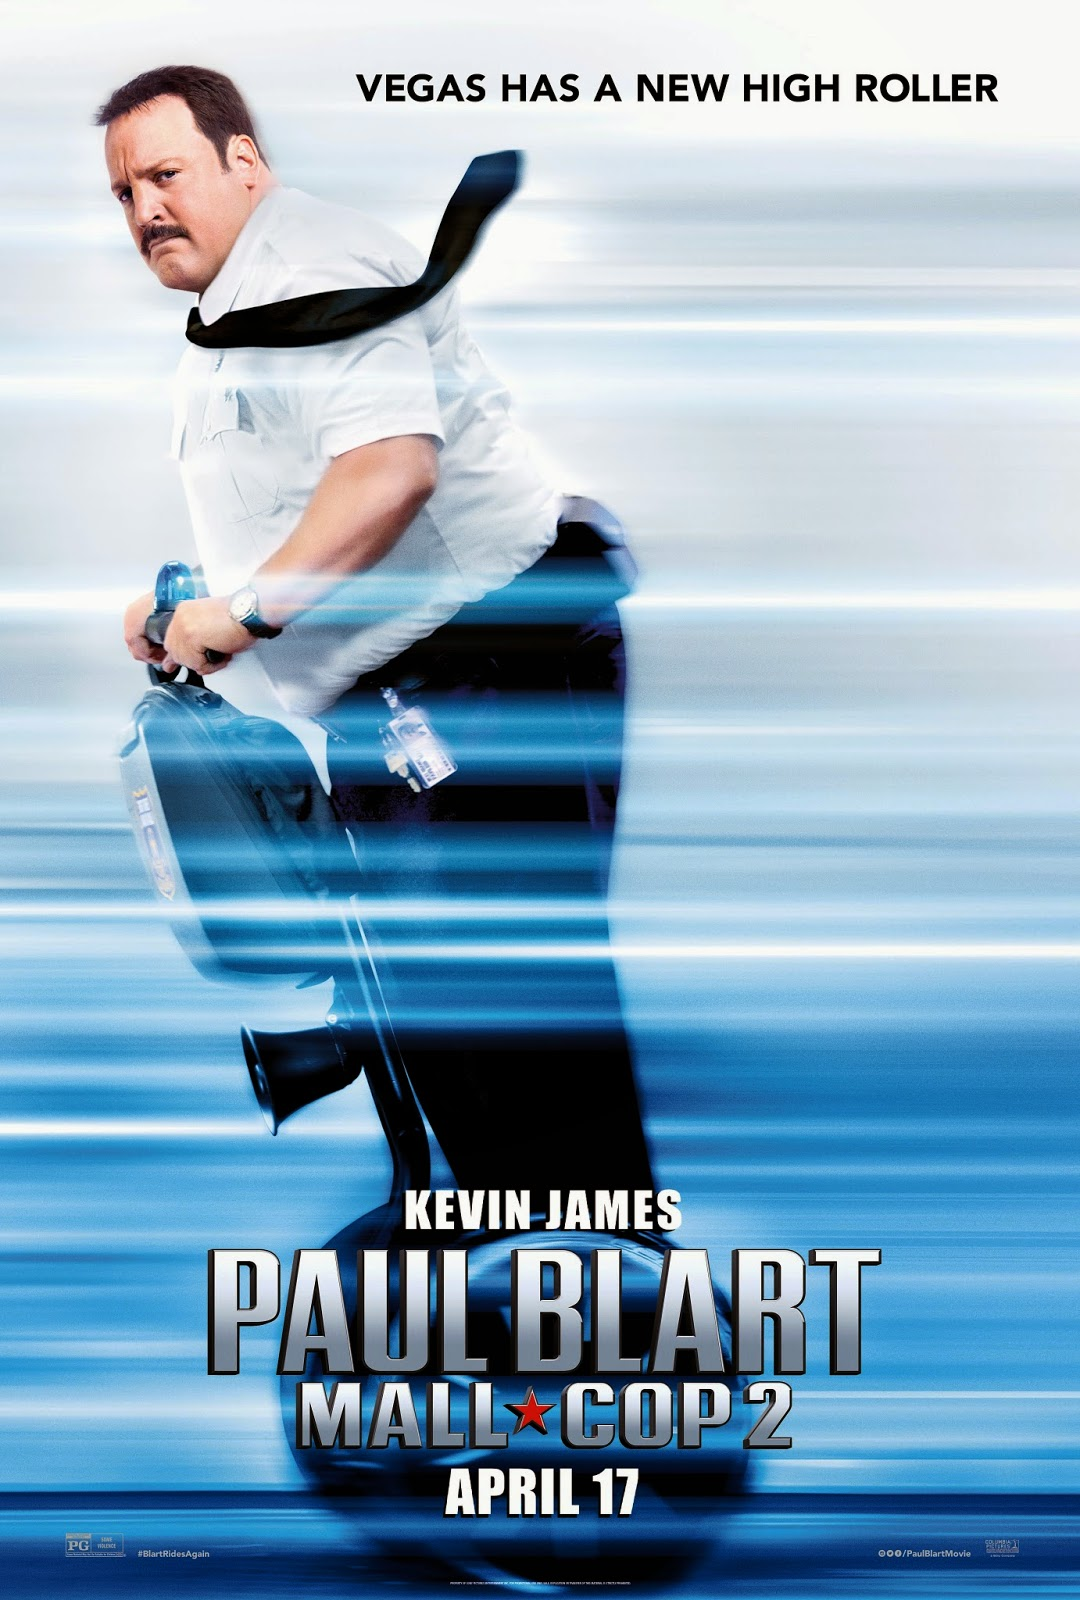 paul-blart-mall-cop-2-PBMC2_DOM_1SHT_V12_JPEG-8_rgb Giveaway - Paul Blart Mall Cop 2 Prize Pack